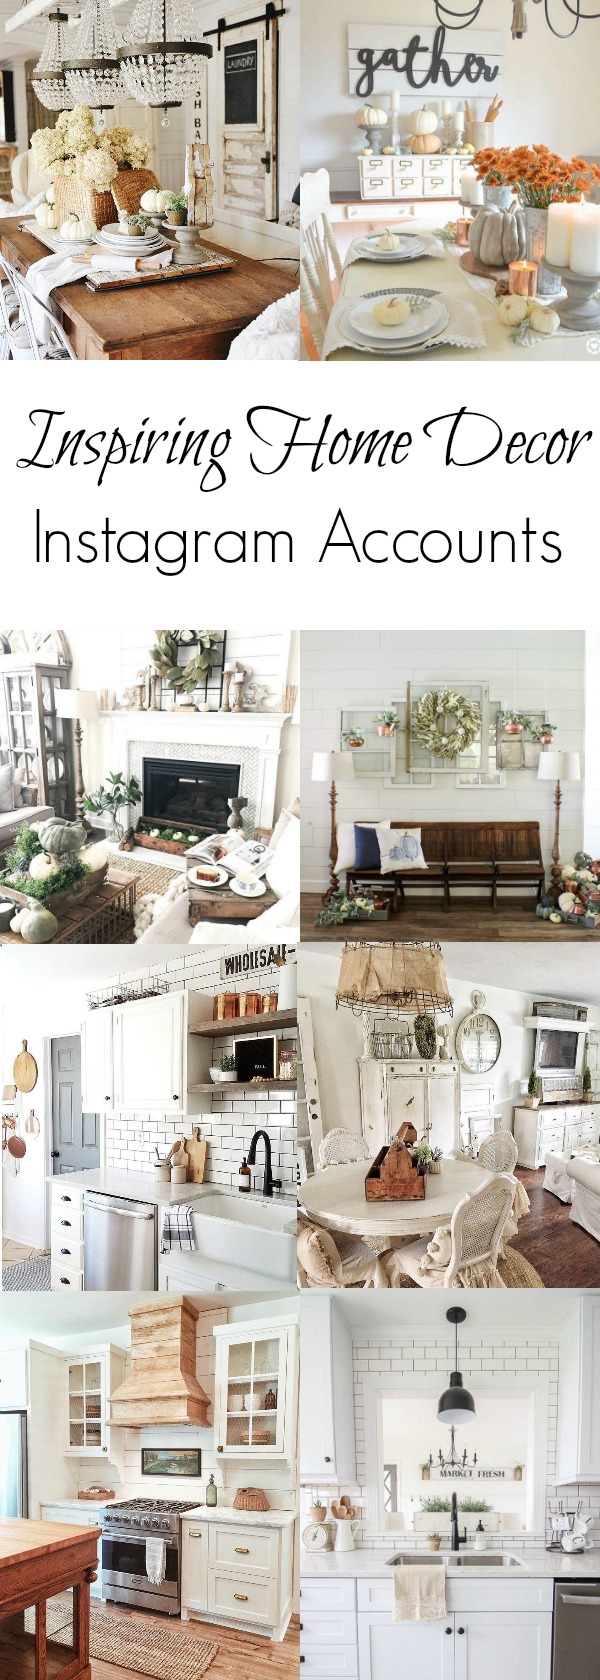 10 Inspiring Home Decor Instagram Accounts - Beauty For Ashes